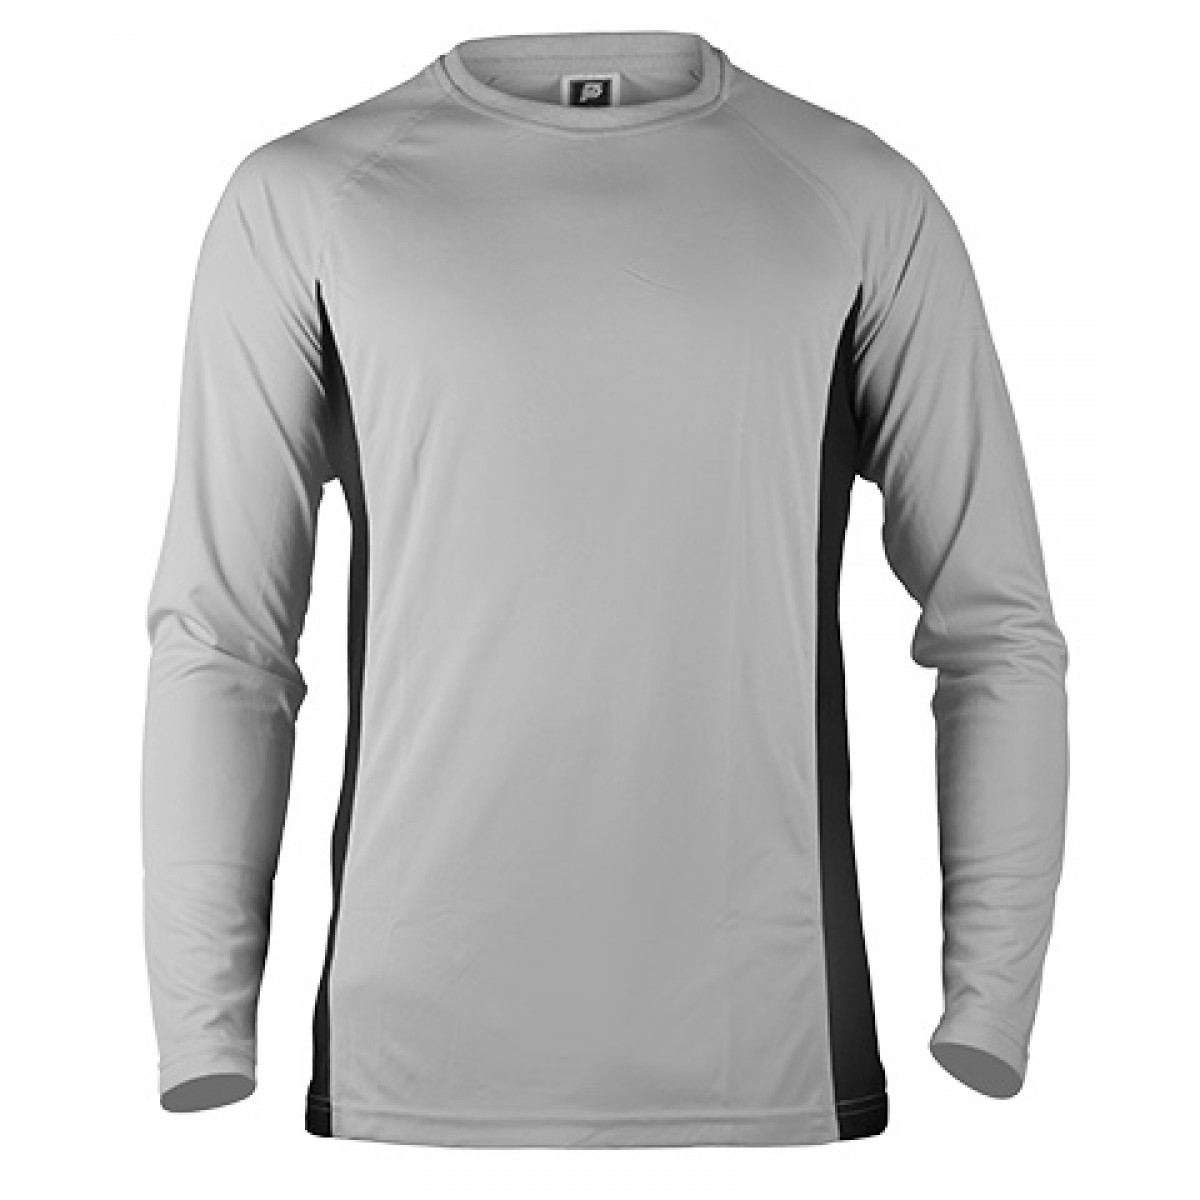 Long Sleeves Performance With Side Insert-Gray/Black-XS